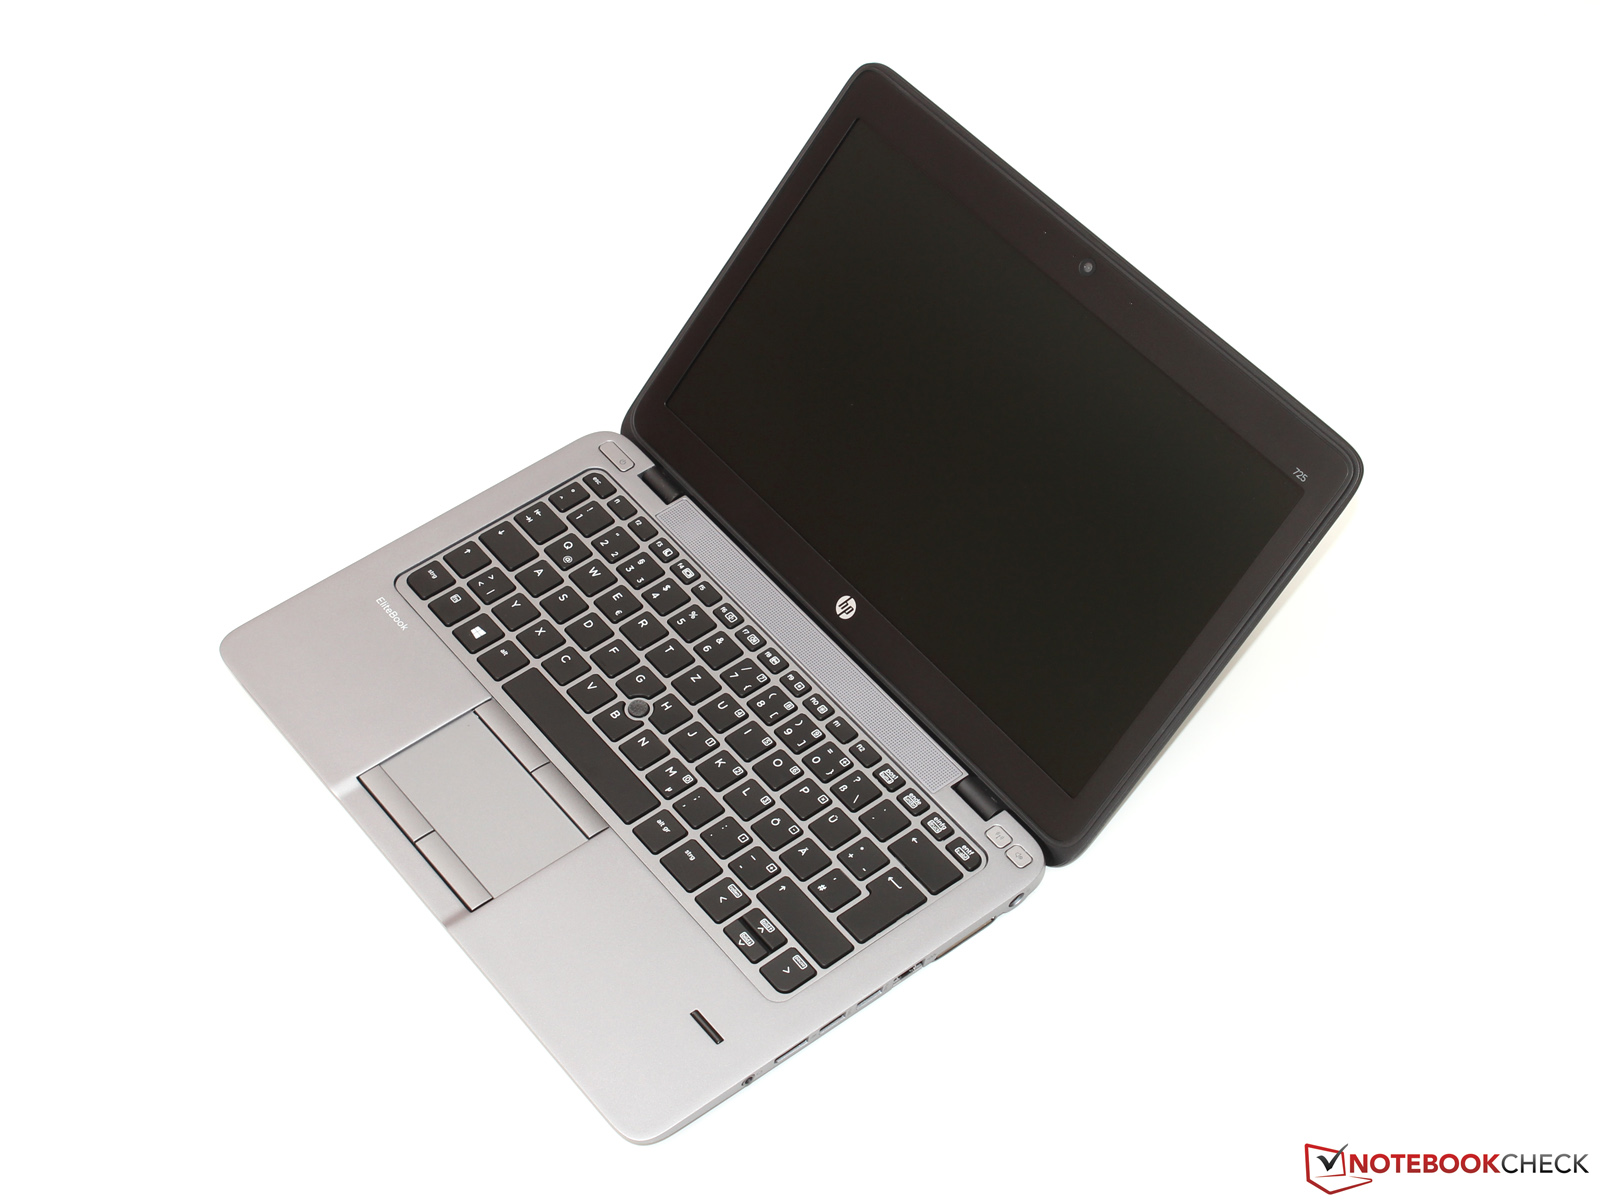 HP ELITEBOOK 820 G1 BROADCOM BLUETOOTH DRIVER